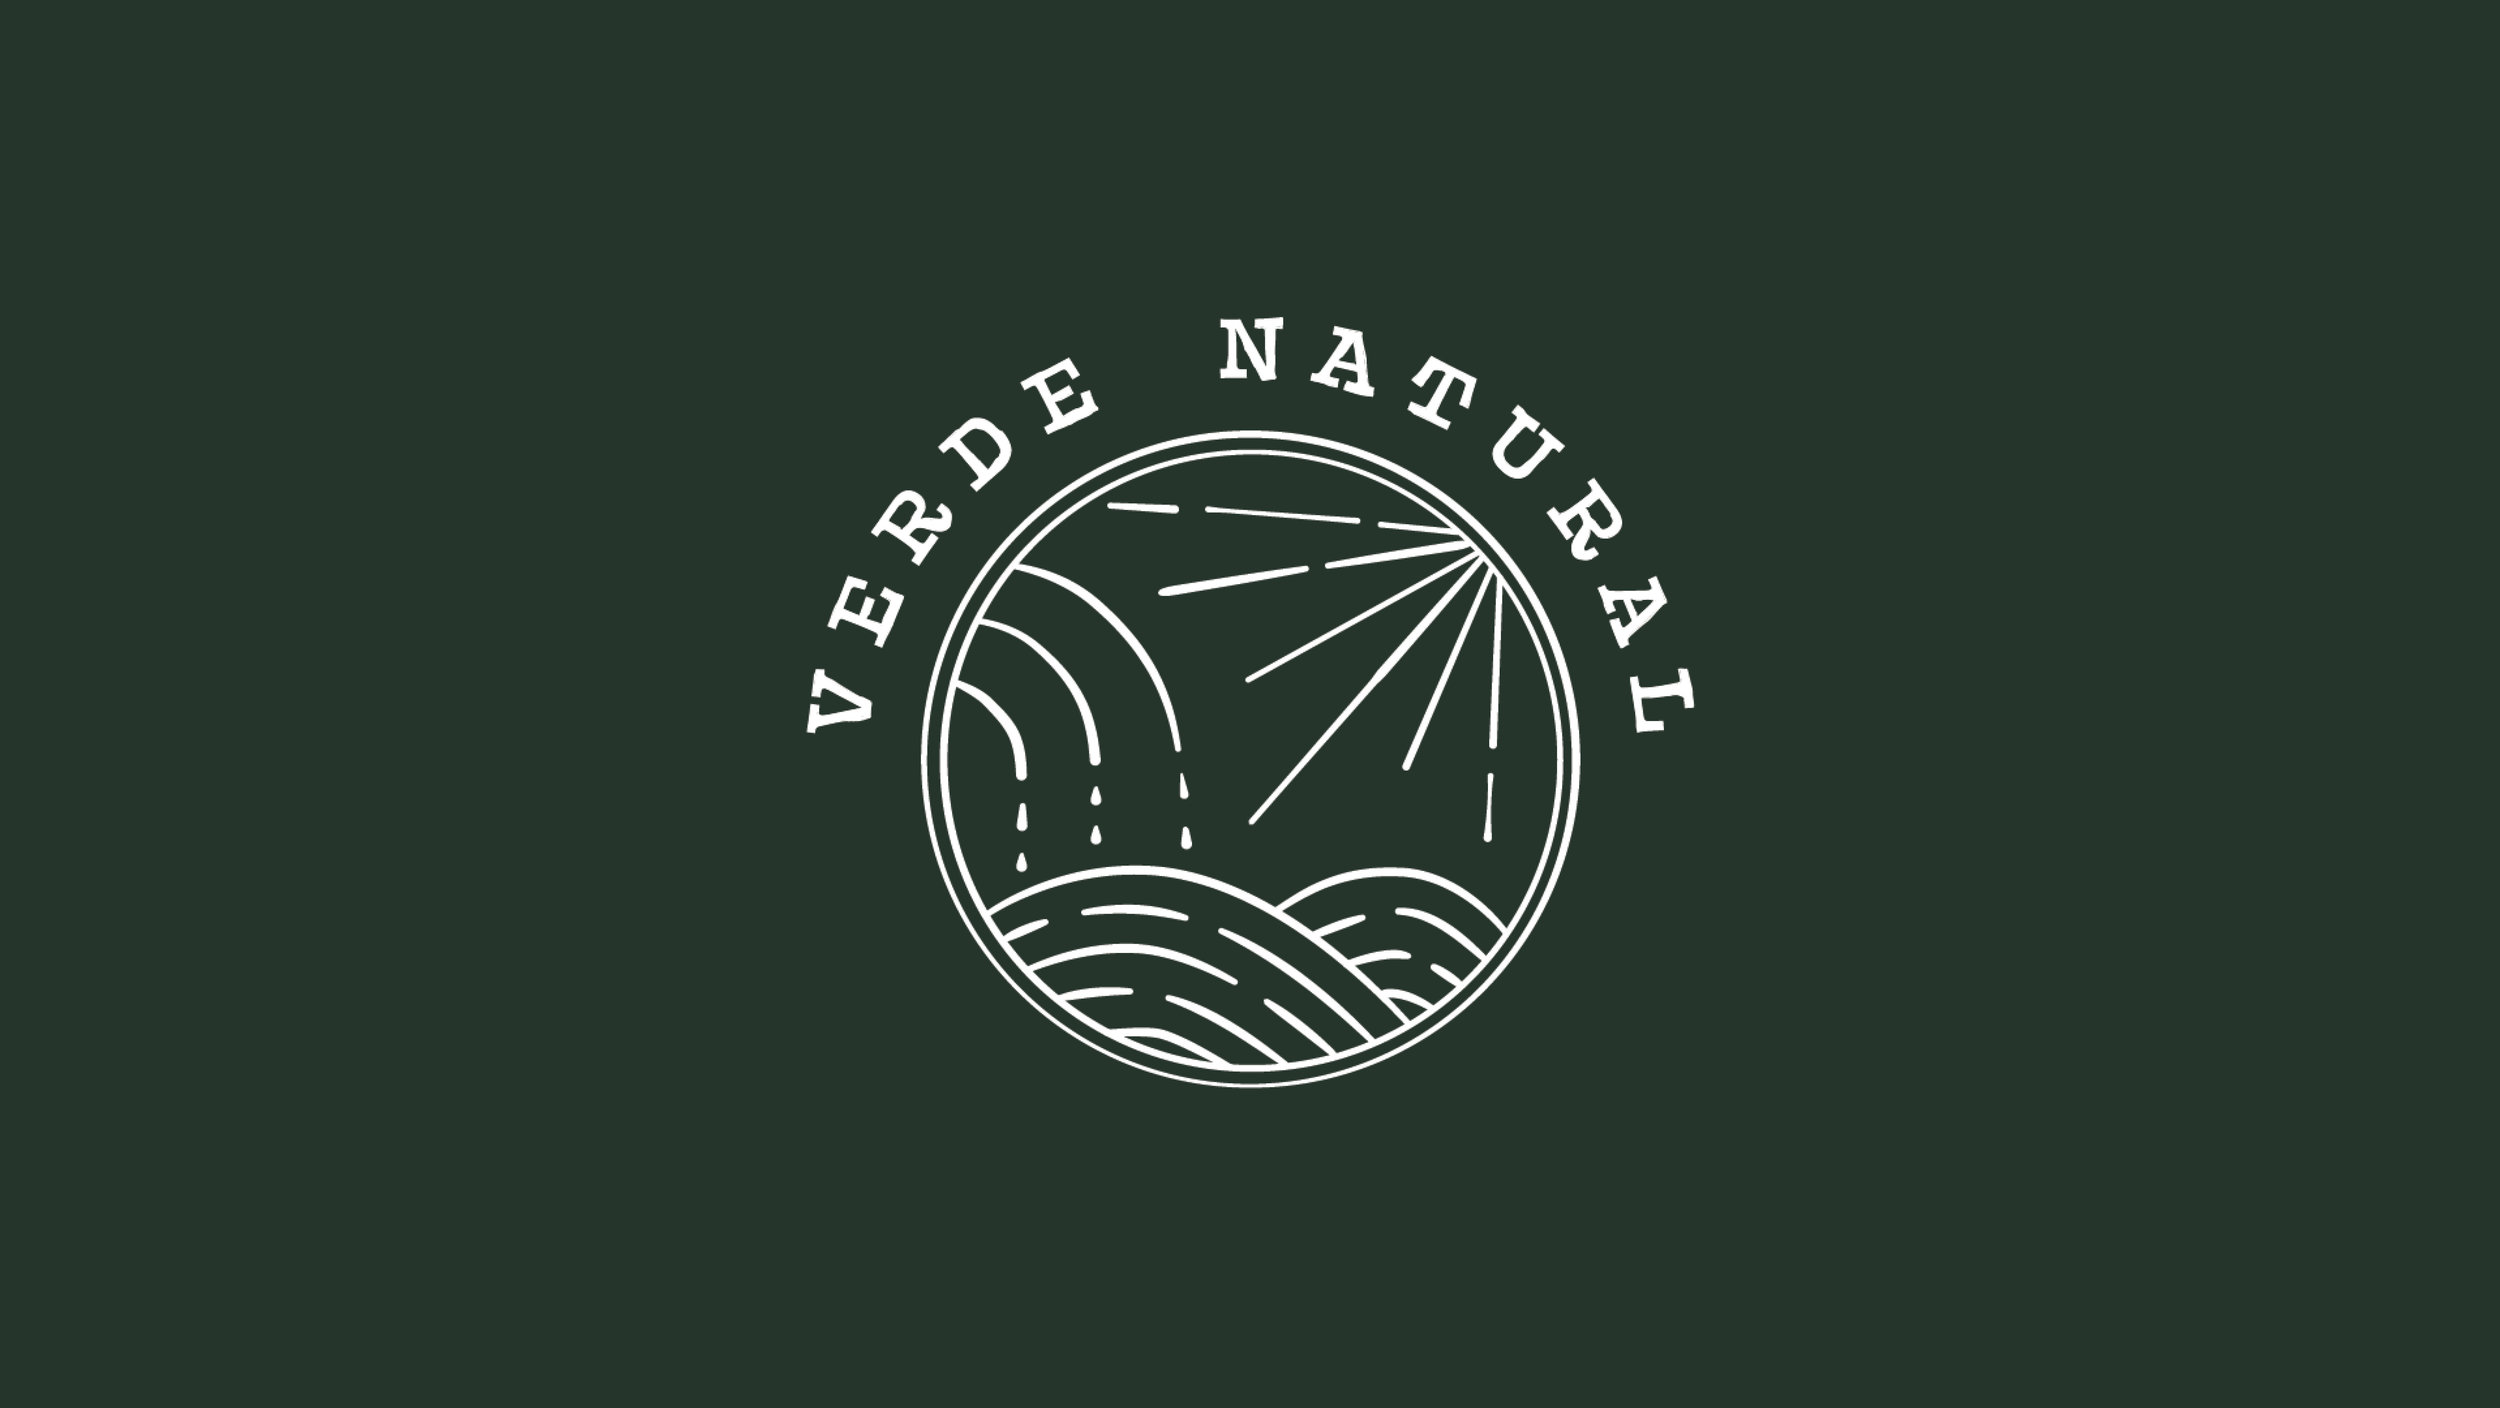 VERDE NATURAL  Strategy & Branding for a leading, purpose-driven organic cannabis brand in Colorado